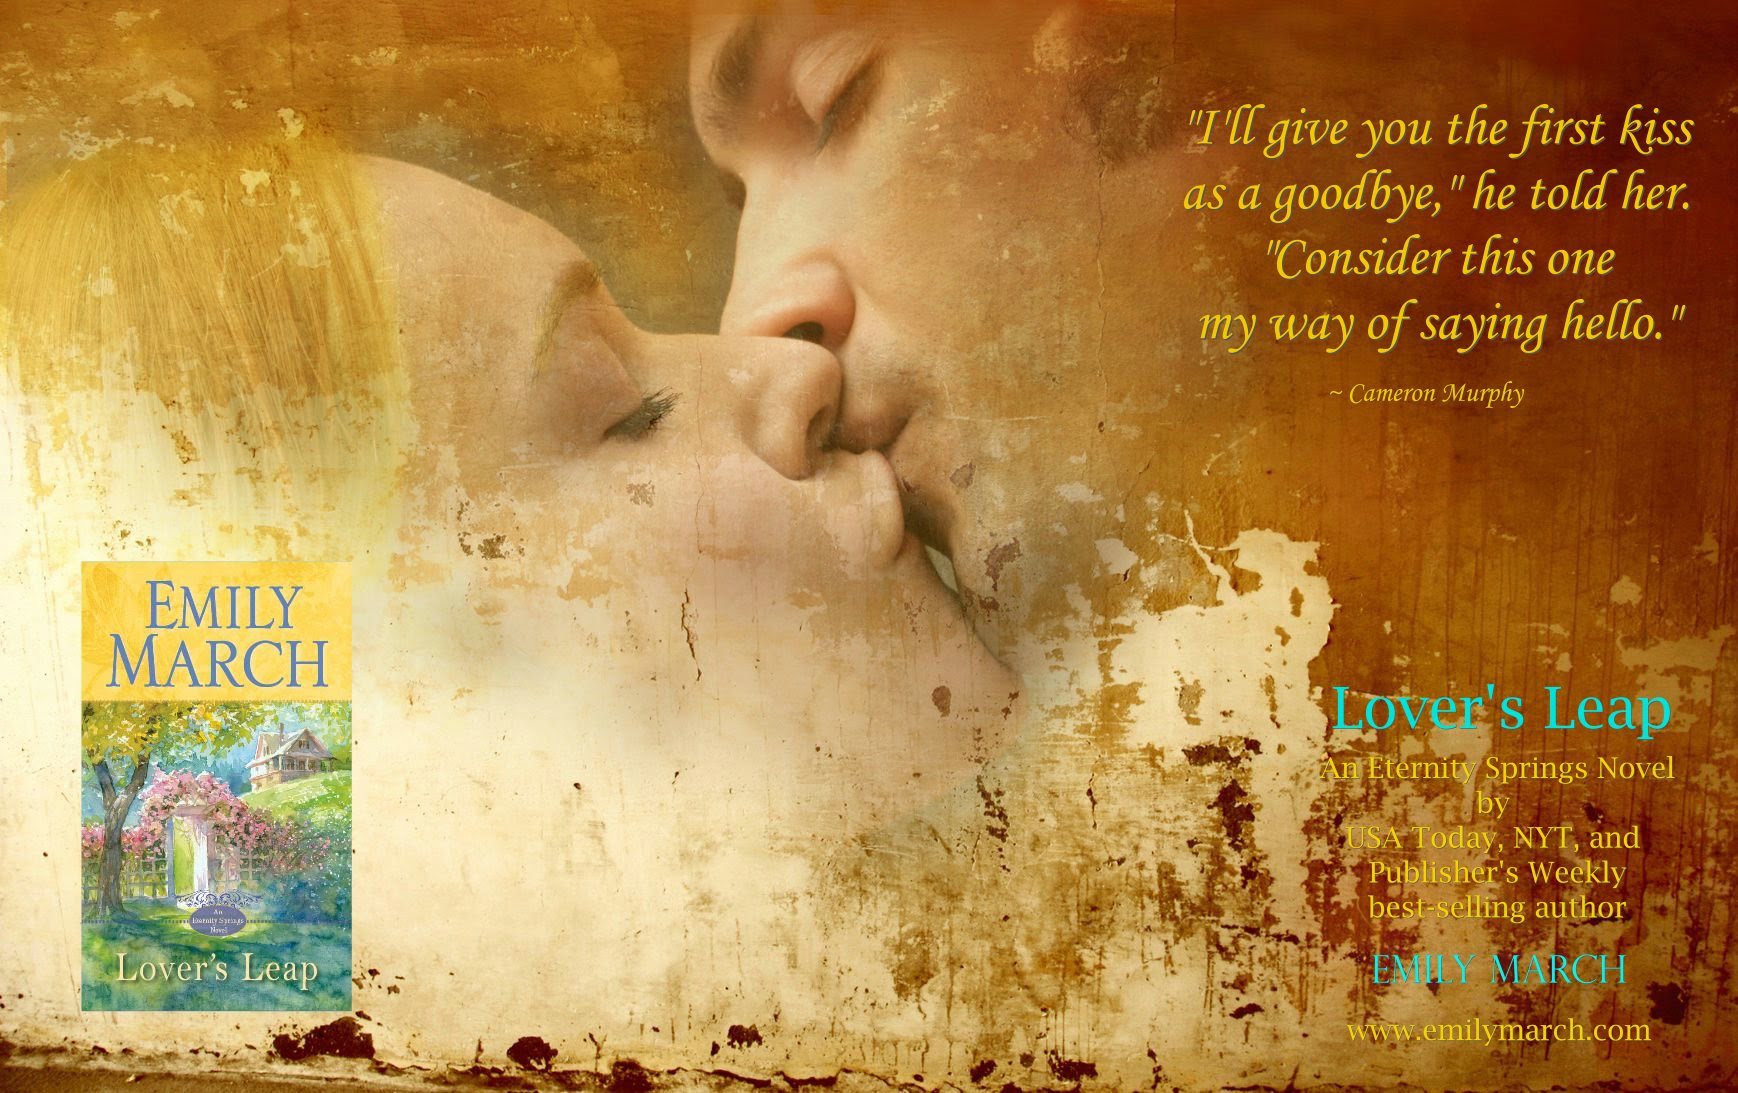 Photo of a couple in a tender kiss with a quote from Lover's Leap, a contemporary romance novel by author Emily March